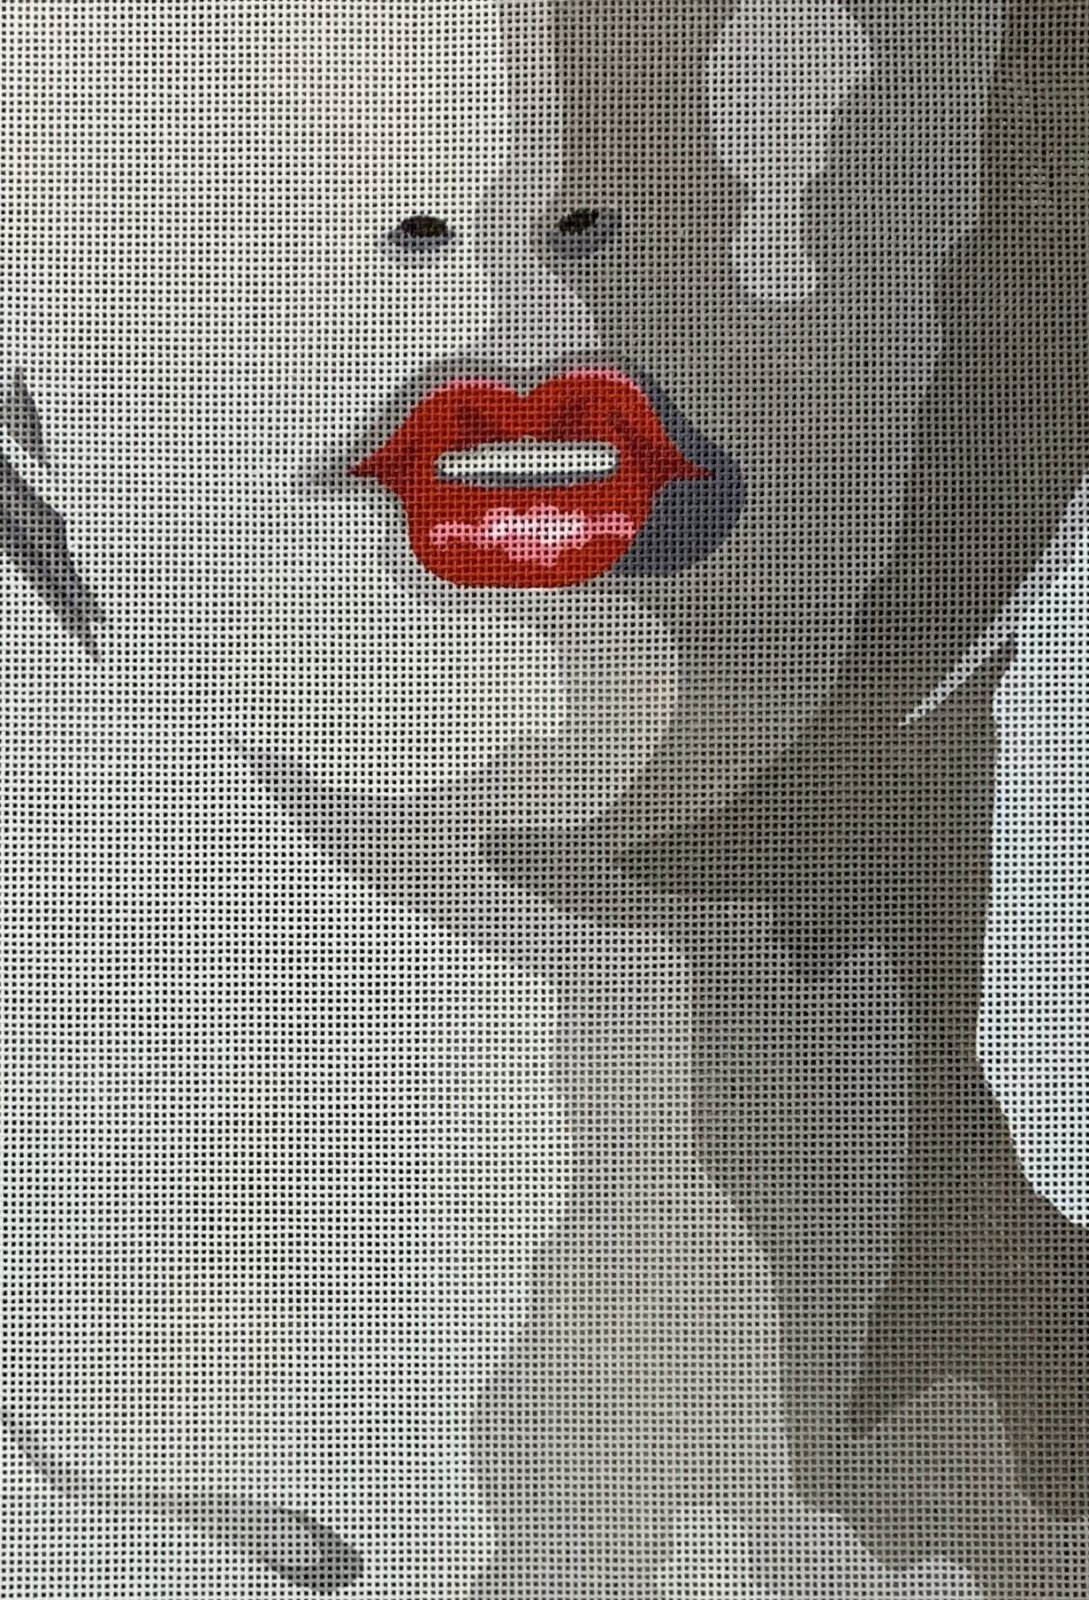 Silloutte Red Lips